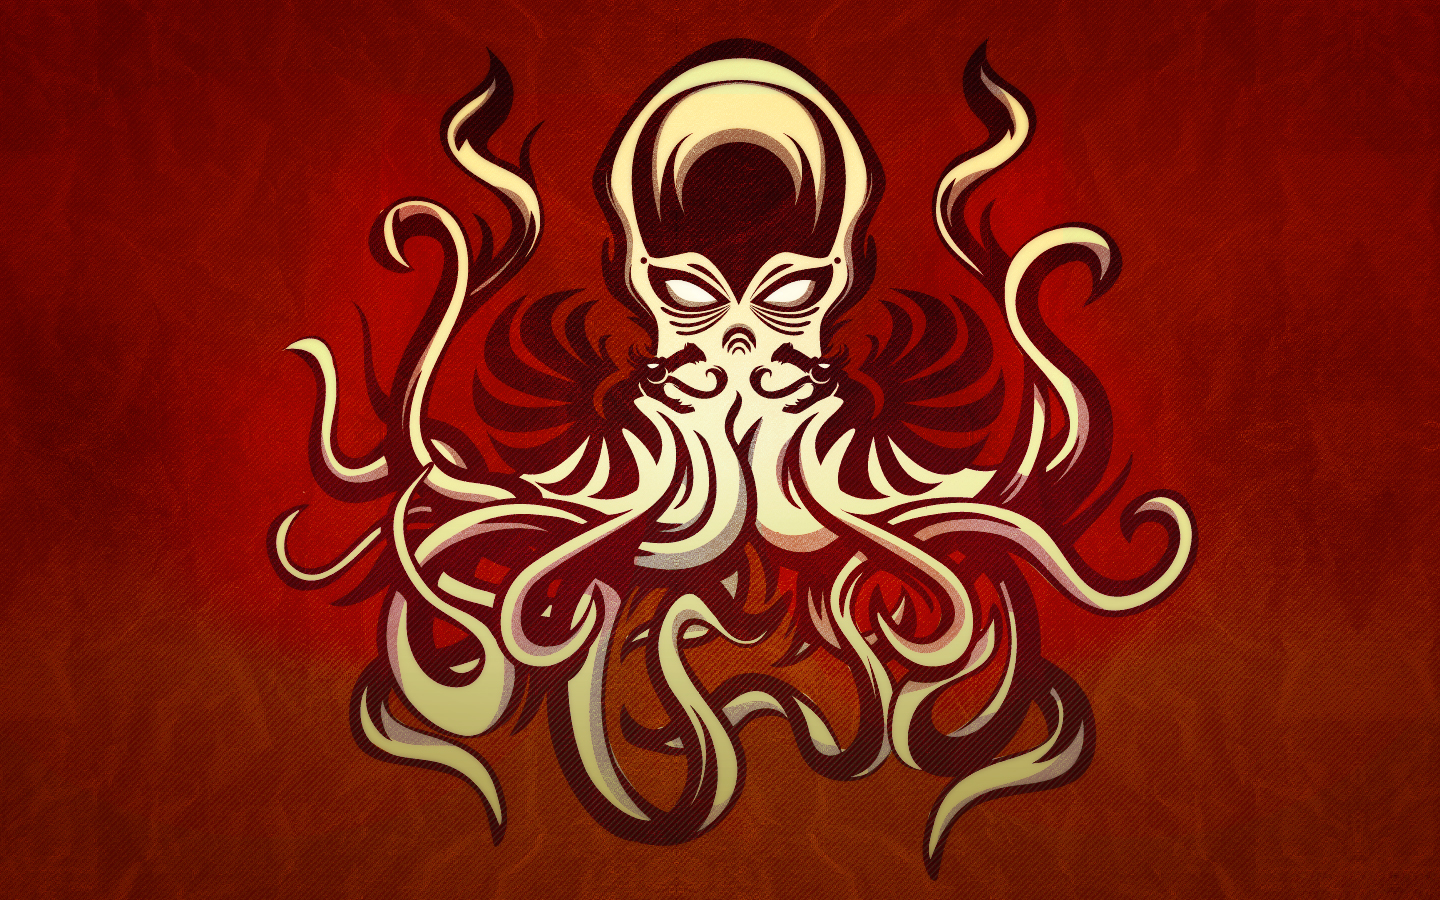 design Cthulhu artwork cthulu HD Wallpaper